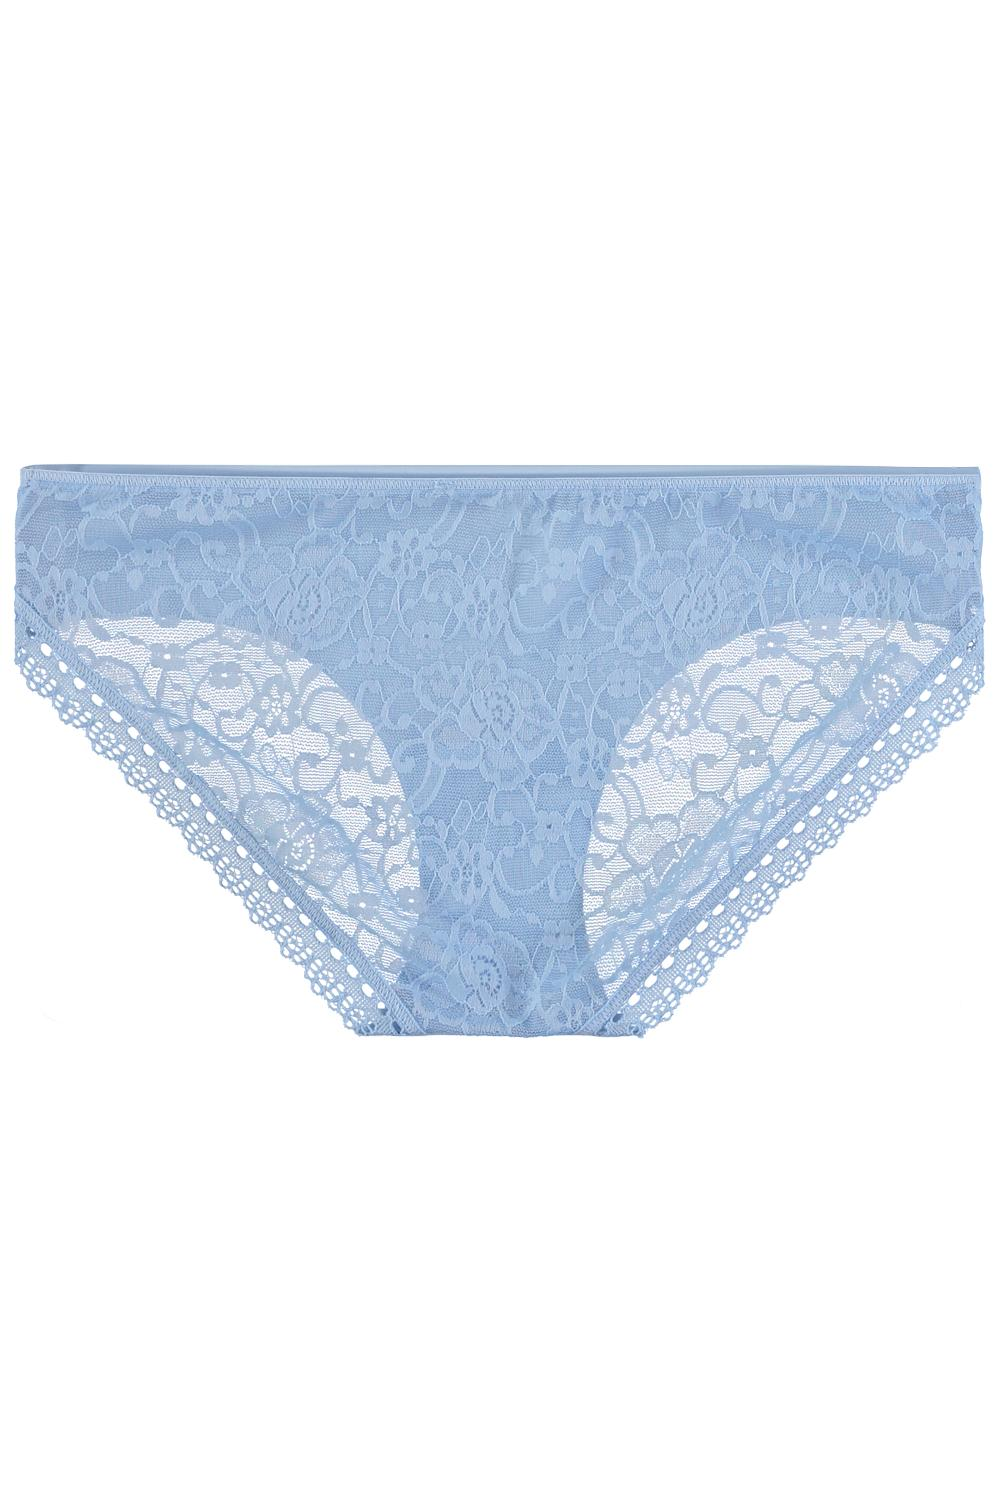 Lace and Raw-Cut Microfibre Panties